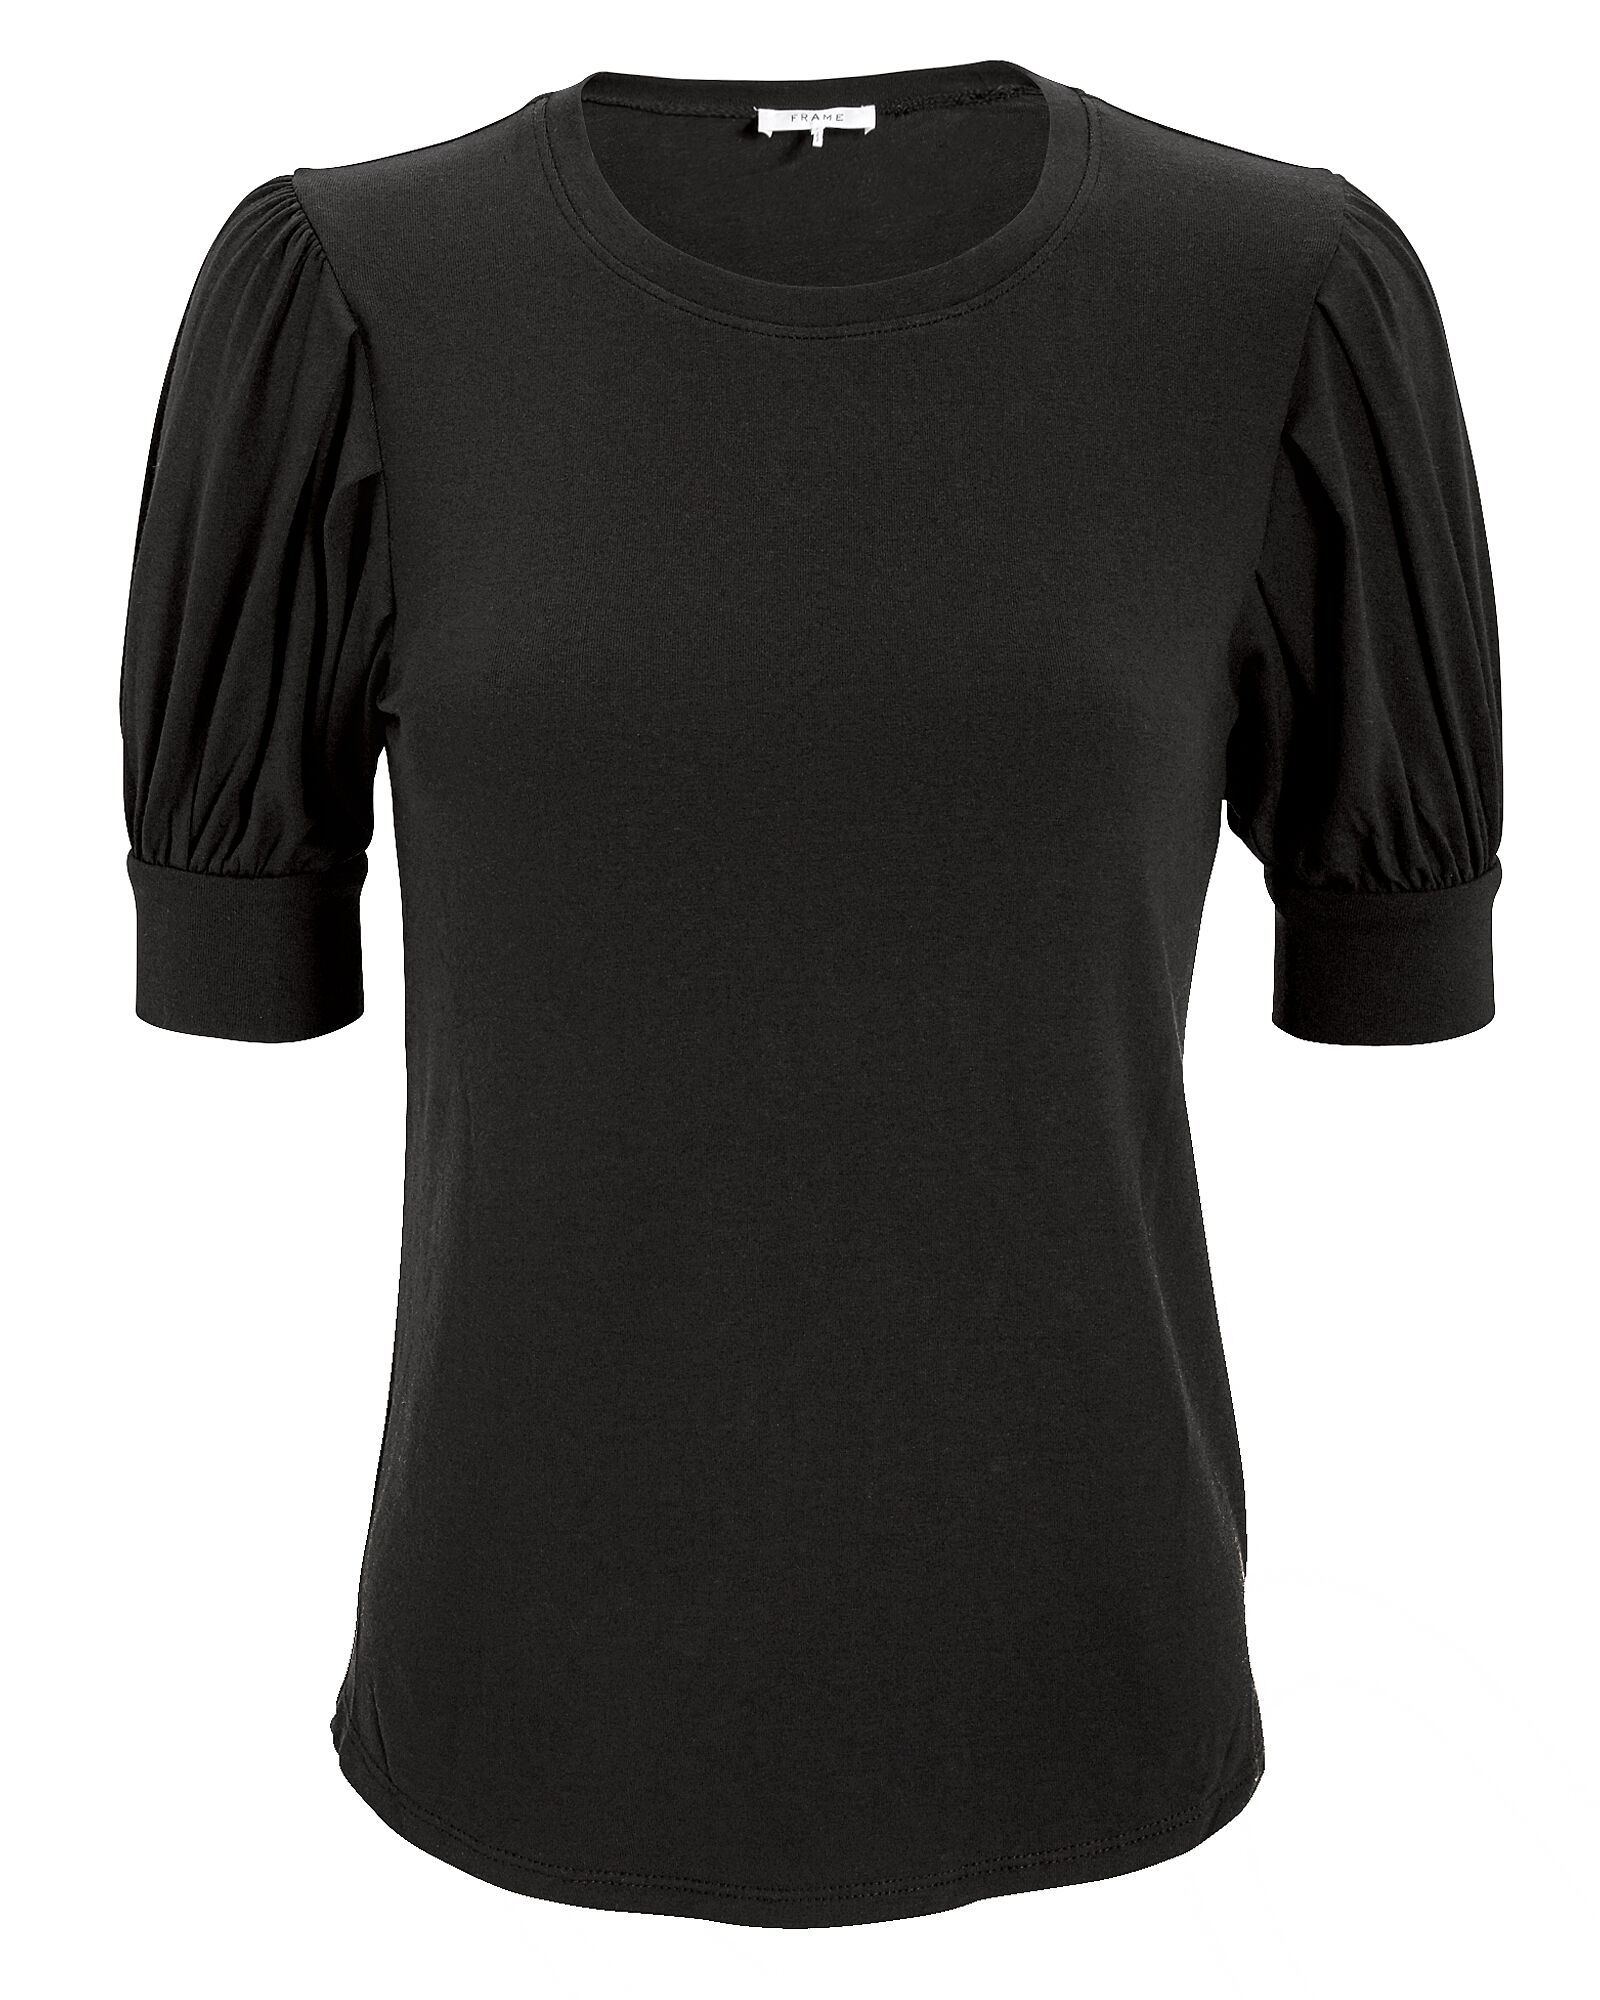 Balloon Sleeve Cotton T-Shirt, BLACK, hi-res